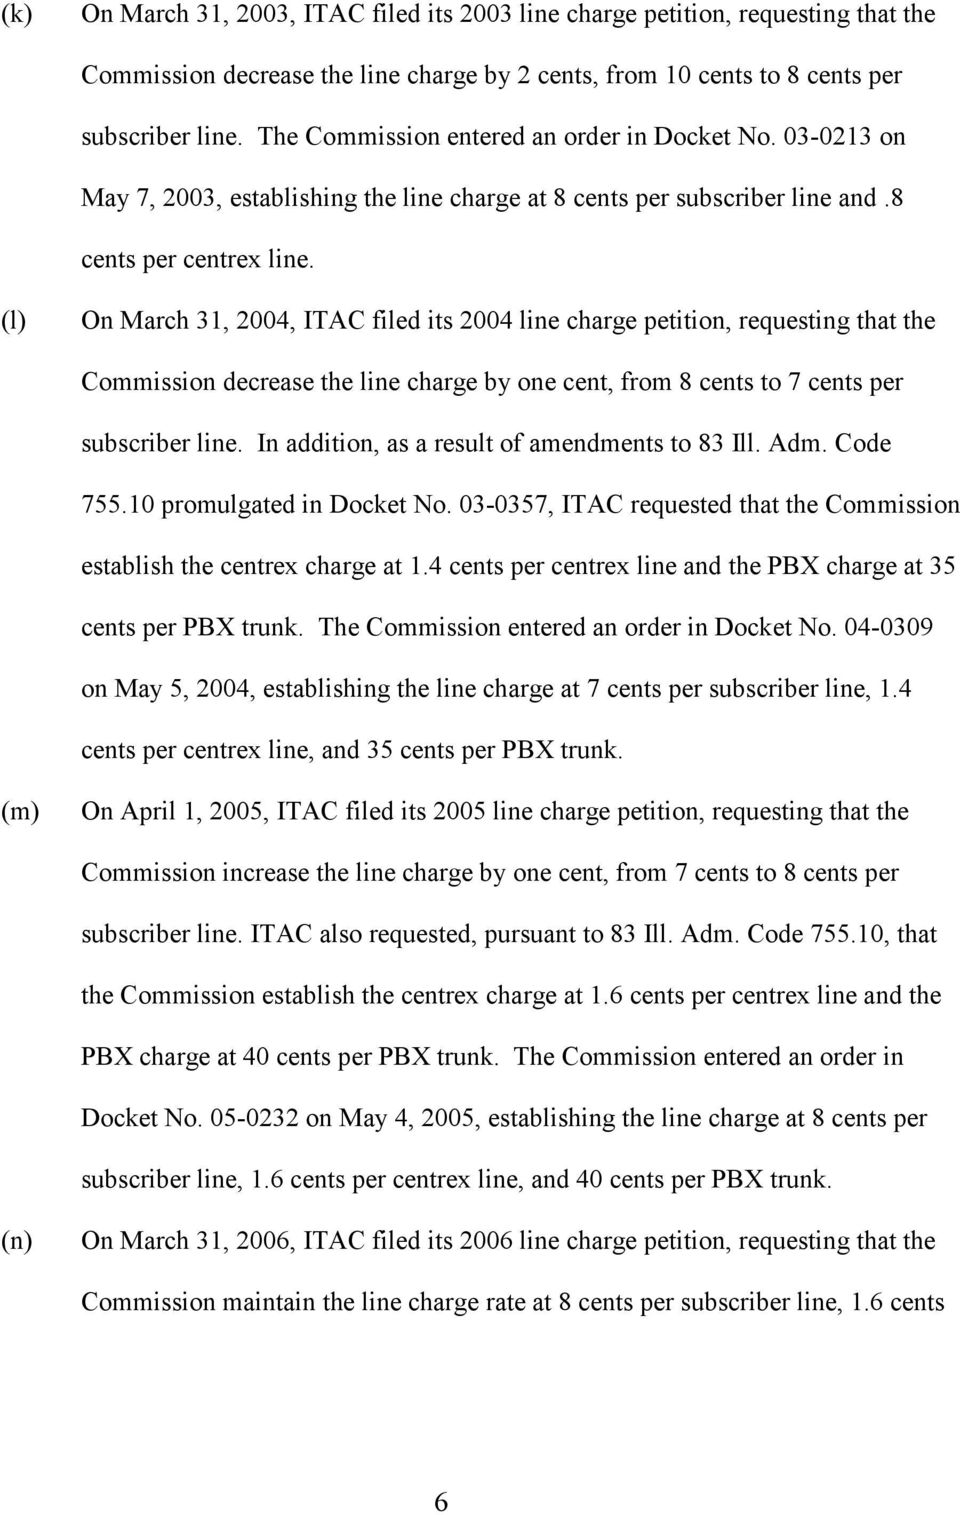 (l) On March 31, 2004, ITAC filed its 2004 line charge petition, requesting that the Commission decrease the line charge by one cent, from 8 cents to 7 cents per subscriber line.